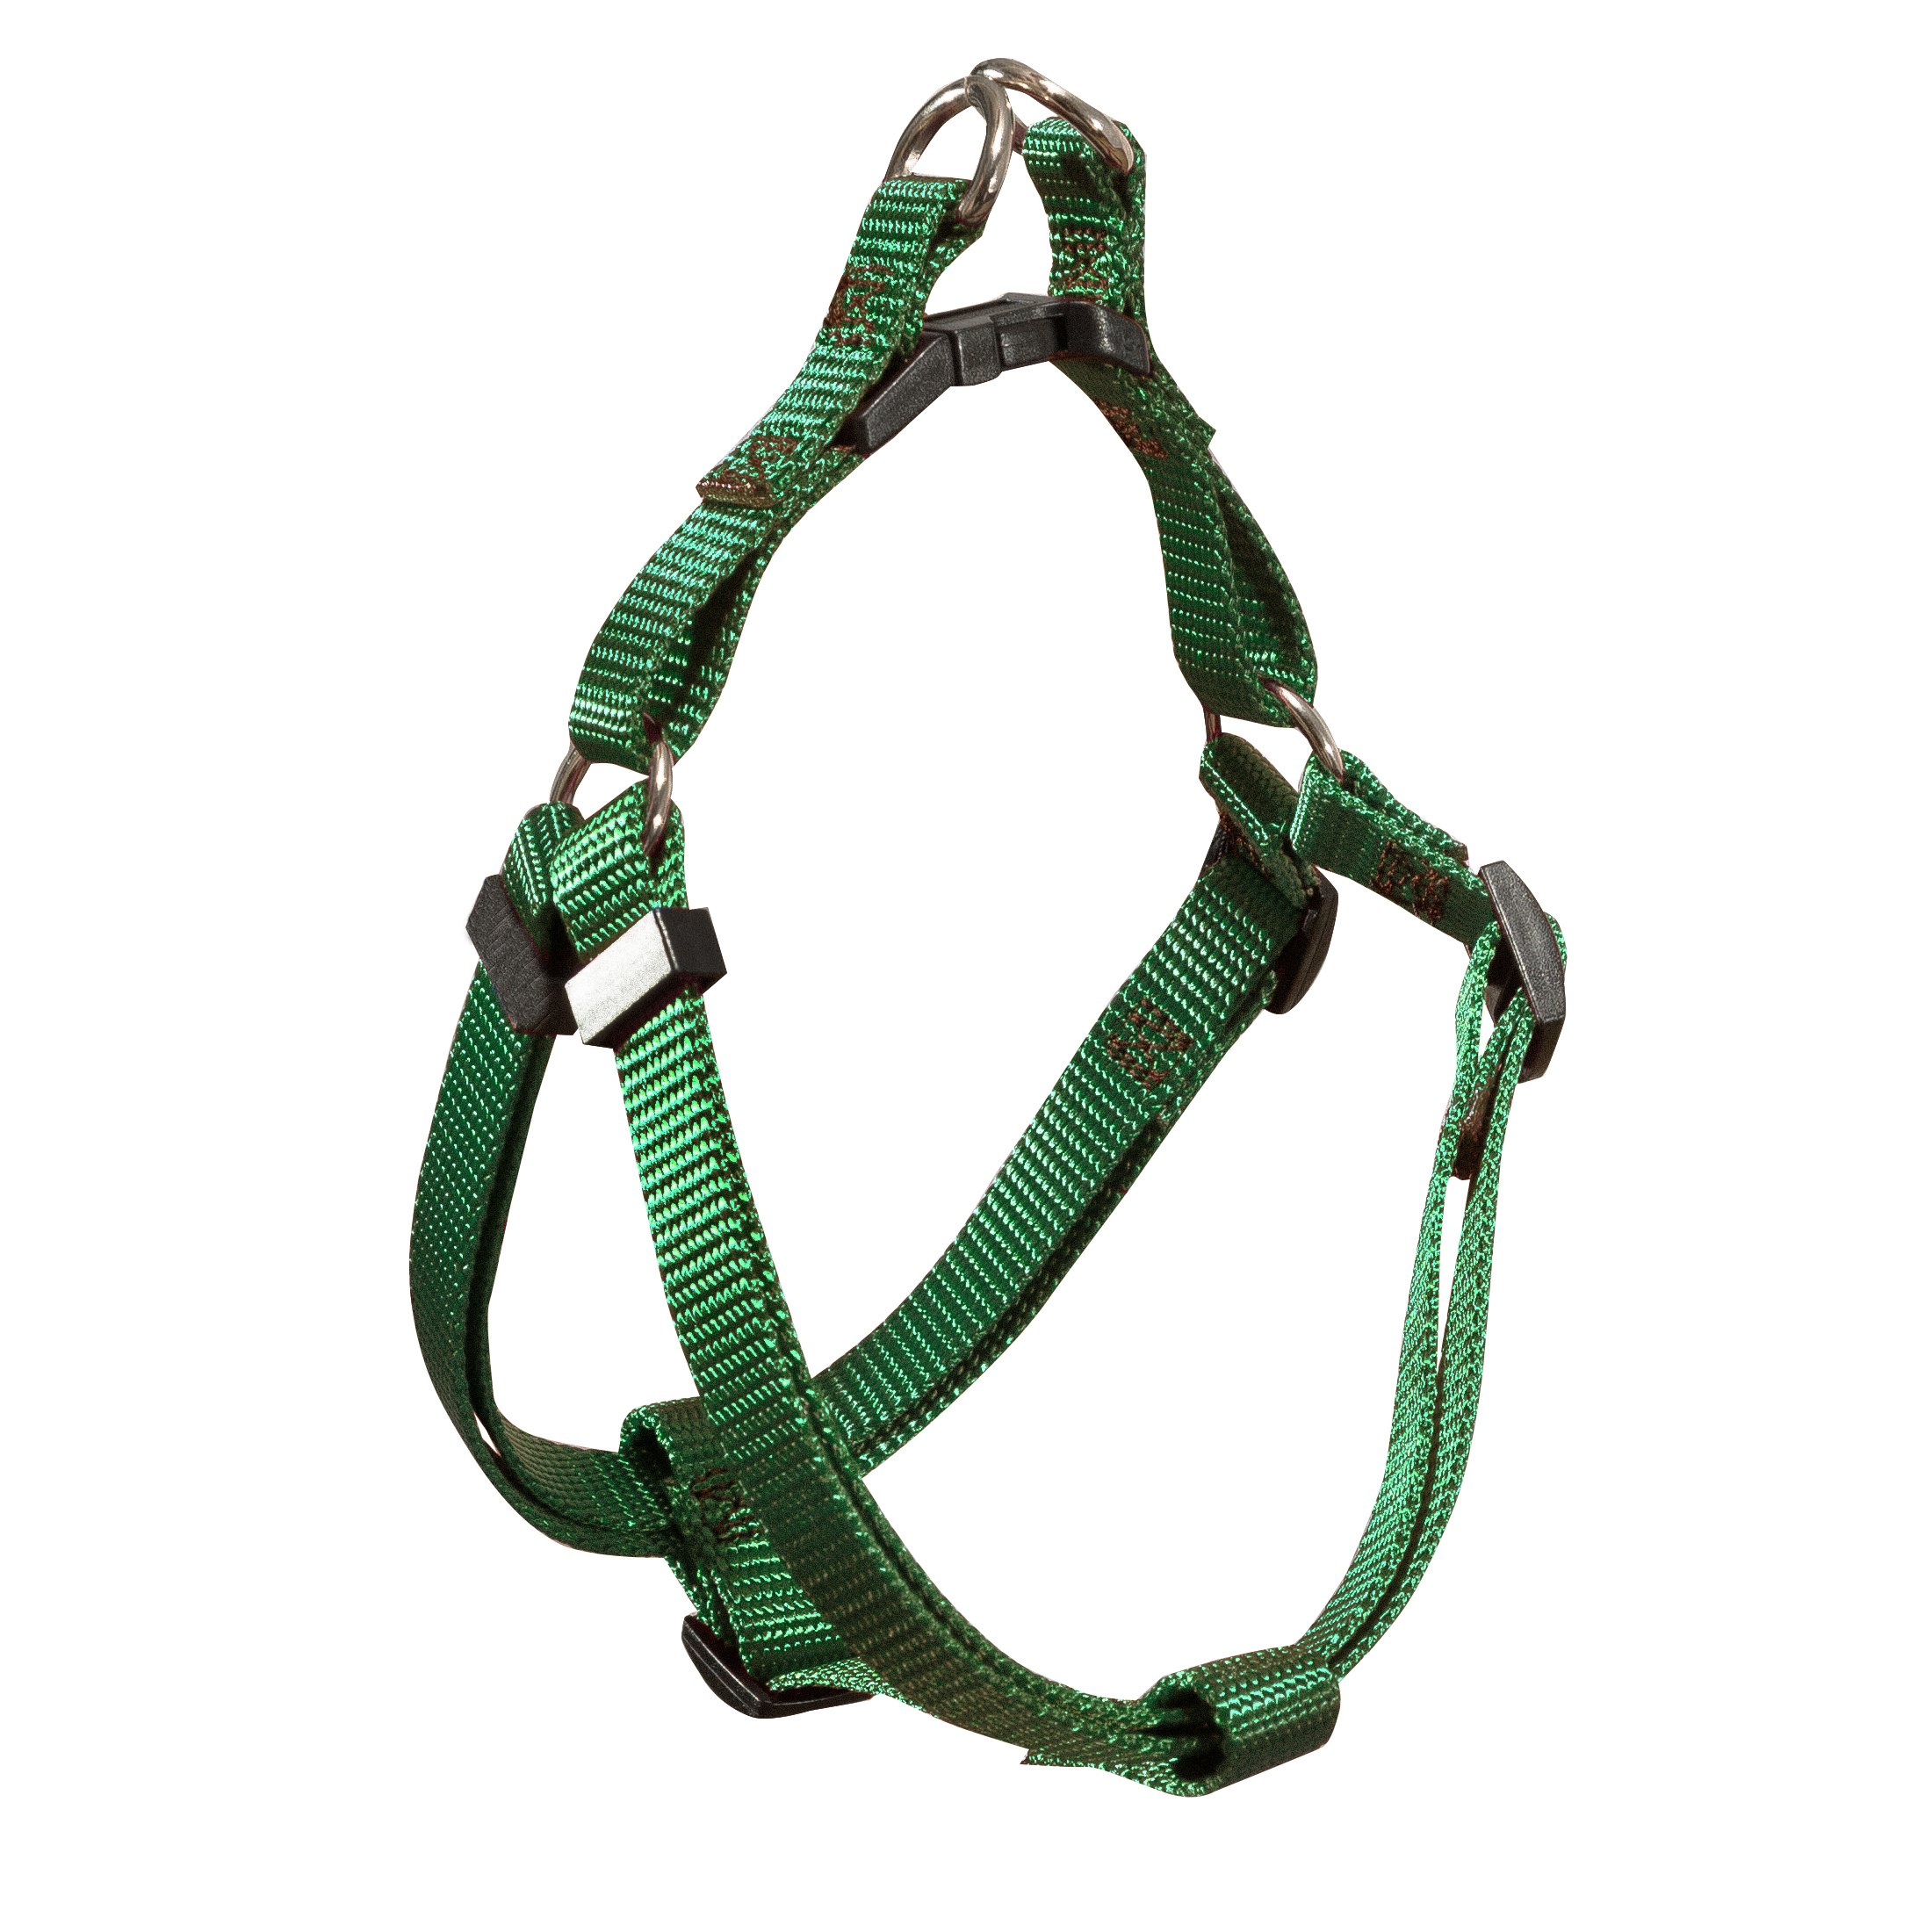 Majestic Pet Best Step In Dog Harness-Perfect For All Sized Dogs Small Medium & Large Heavy Duty Material- Adjustable For Training & Walking-25X40 Green by Majestic Pet (Image #2)